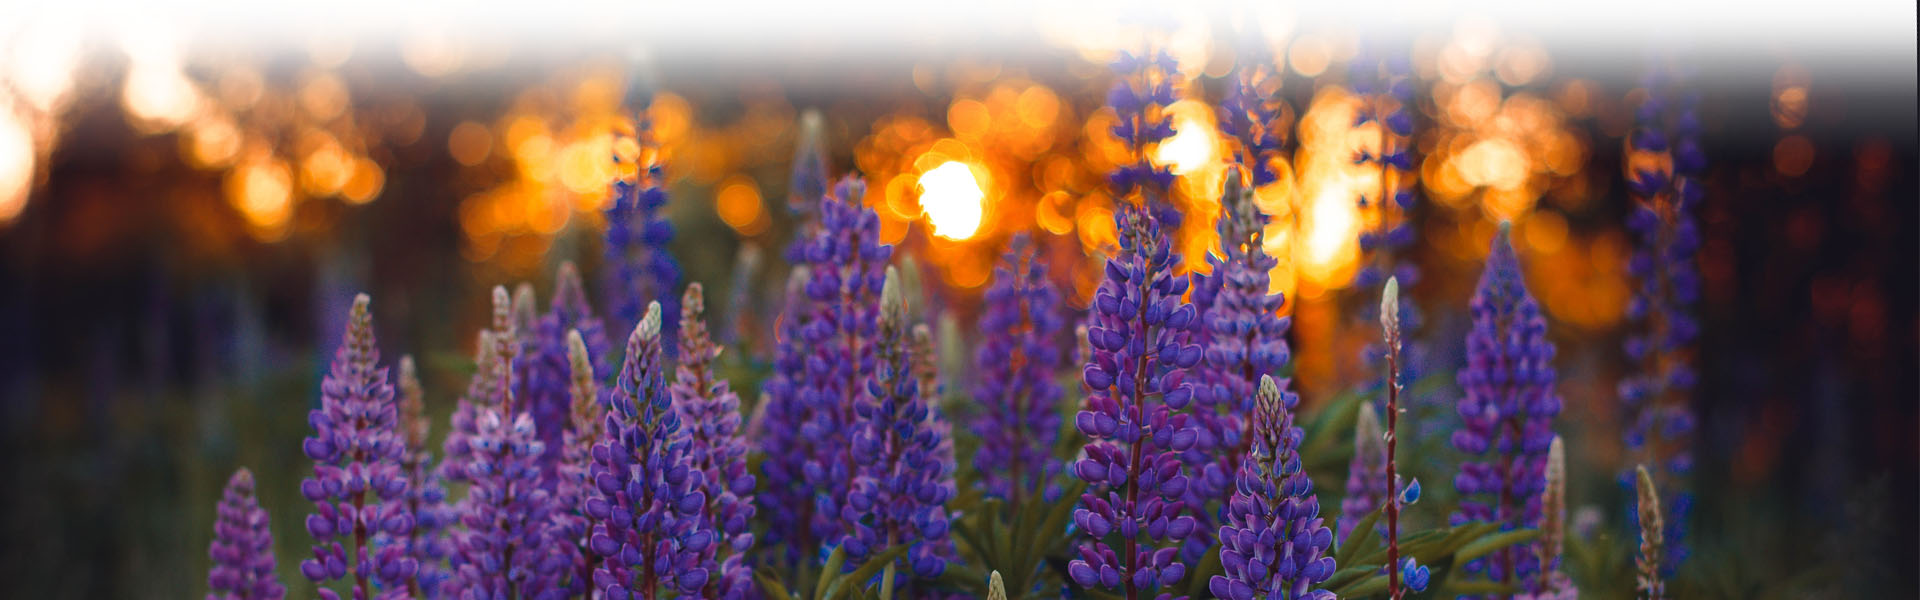 Lilac Flowers at sunset